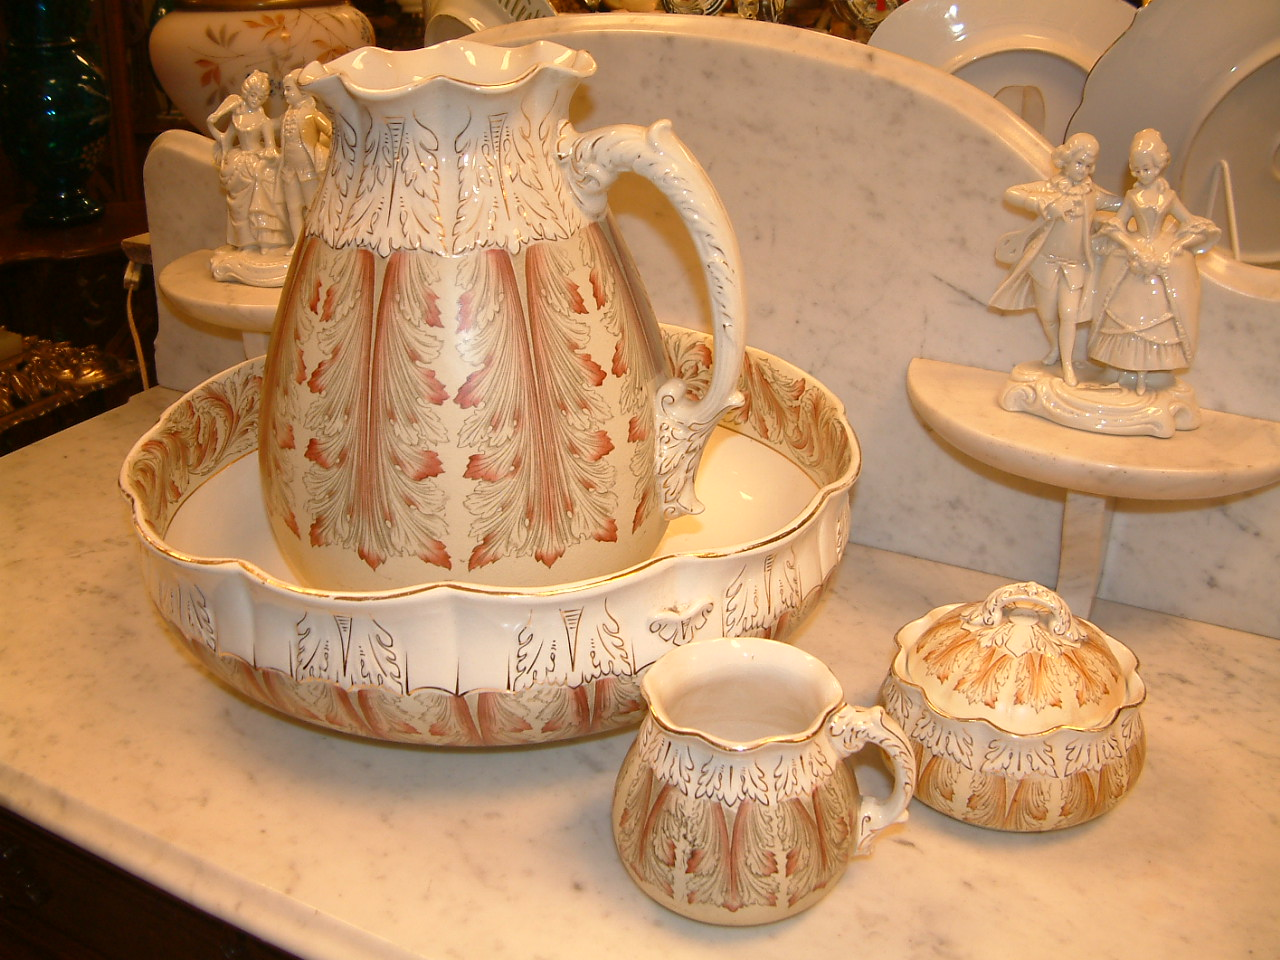 Beautifully Decorated Pitcher & Bowl Set